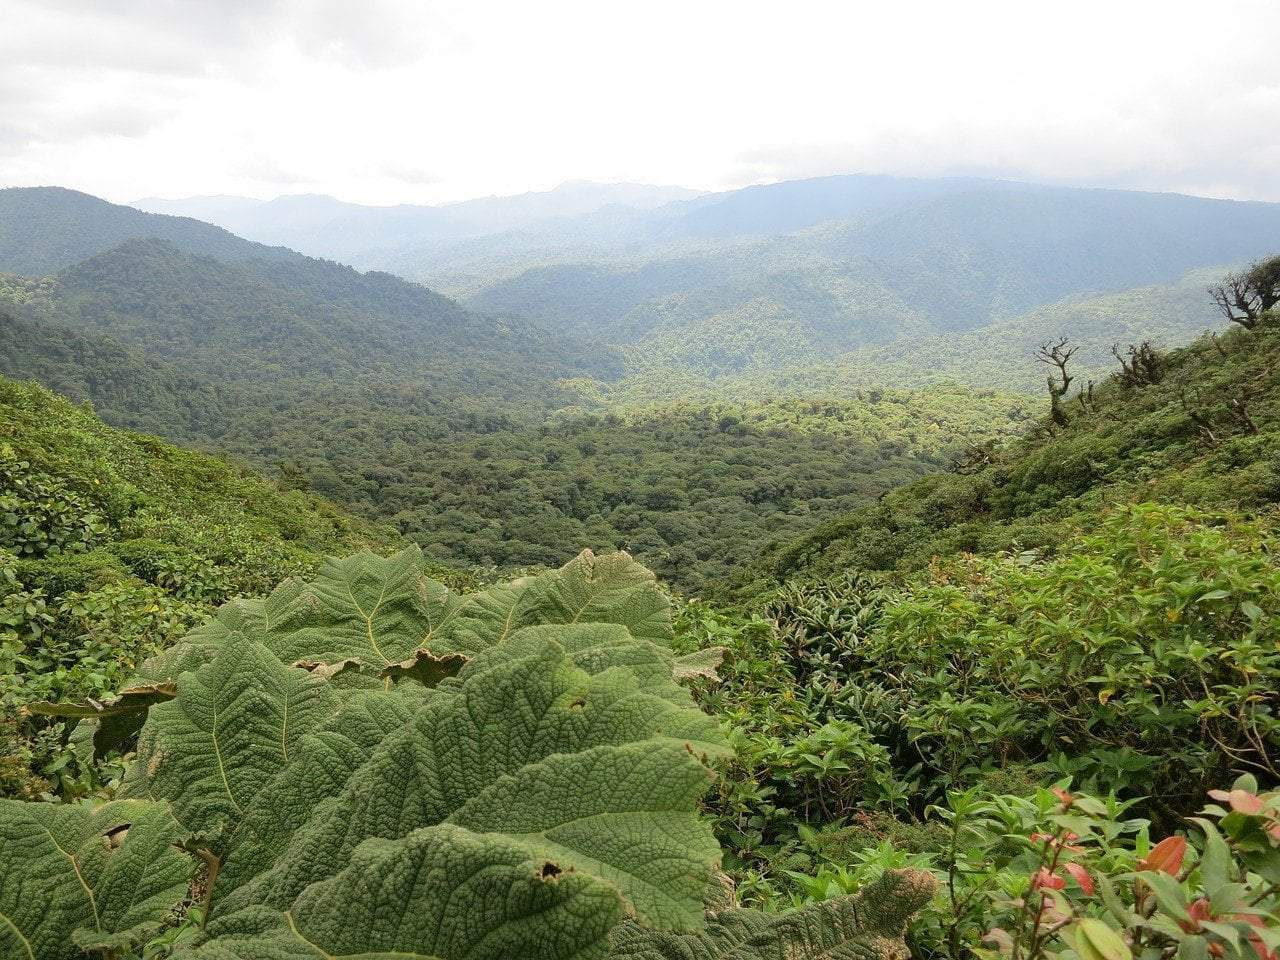 Reforestation Recap: Planting Trees In the Rainforest